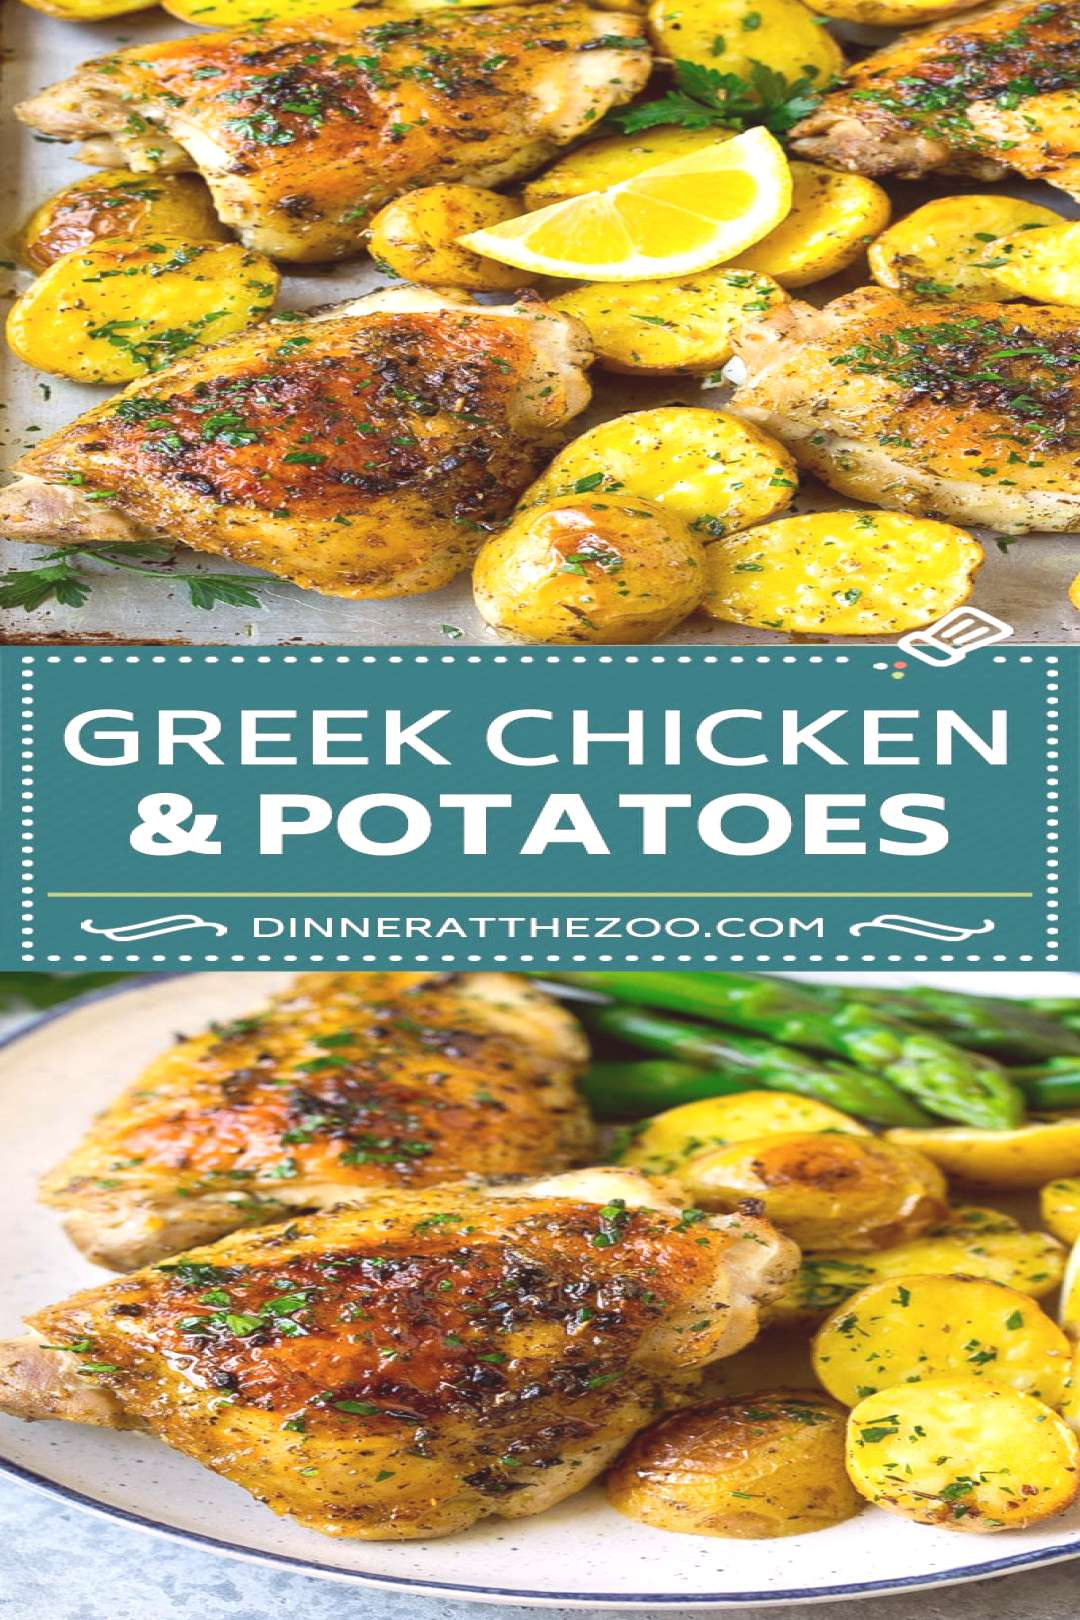 Greek Chicken and Potatoes Recipe | Sheet Pan Dinner | Roasted Chicken Thighs